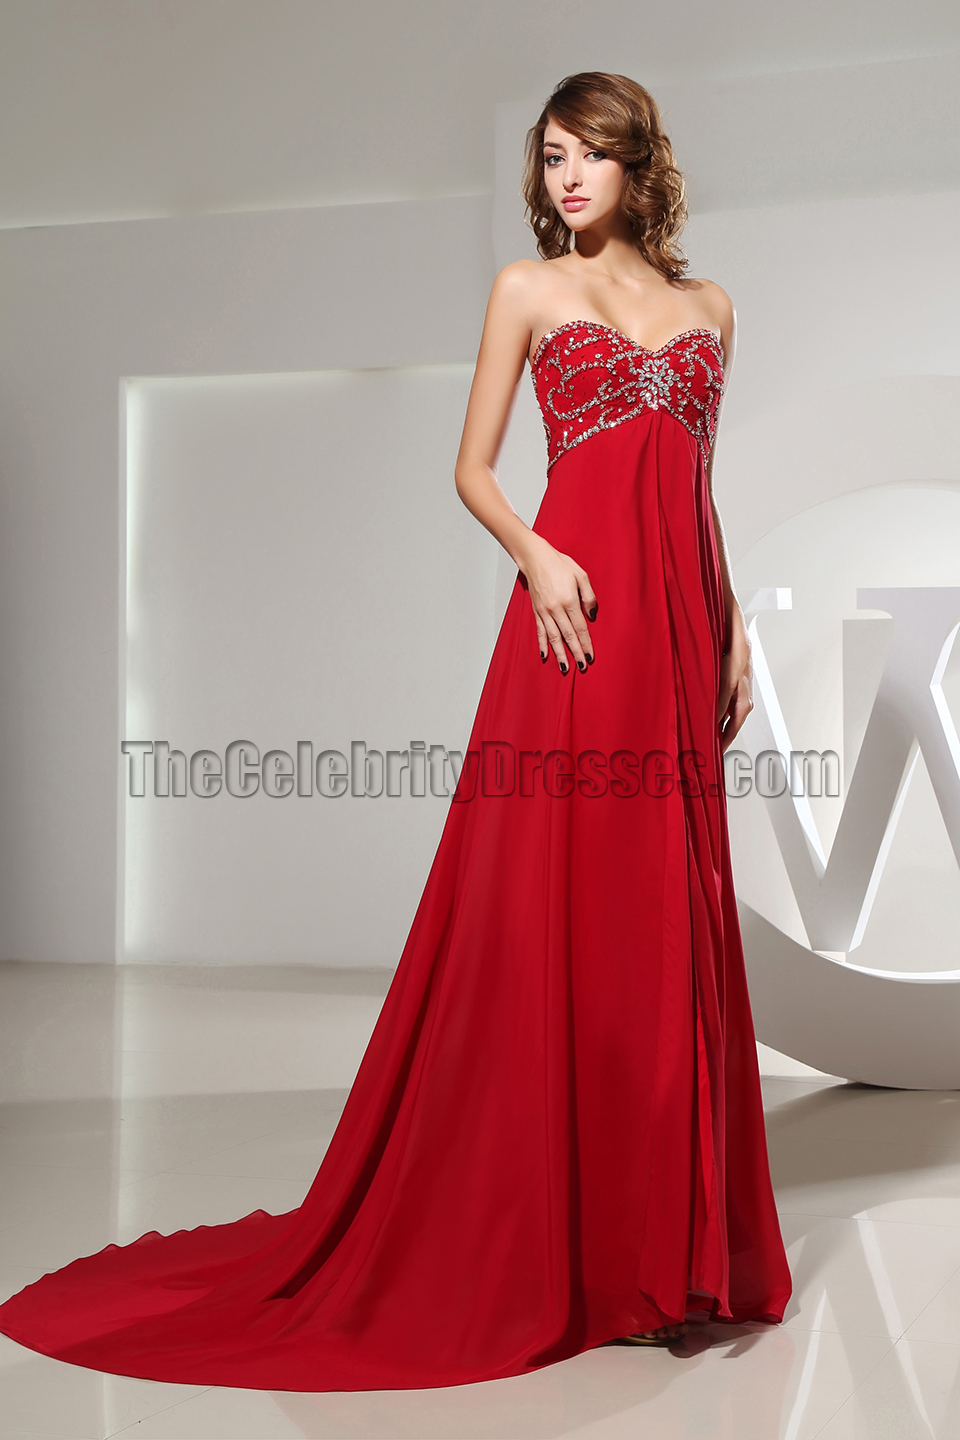 Red strapless sweetheart beaded bridesmaid dress prom dresses red strapless sweetheart beaded bridesmaid dress prom dresses thecelebritydresses ombrellifo Images